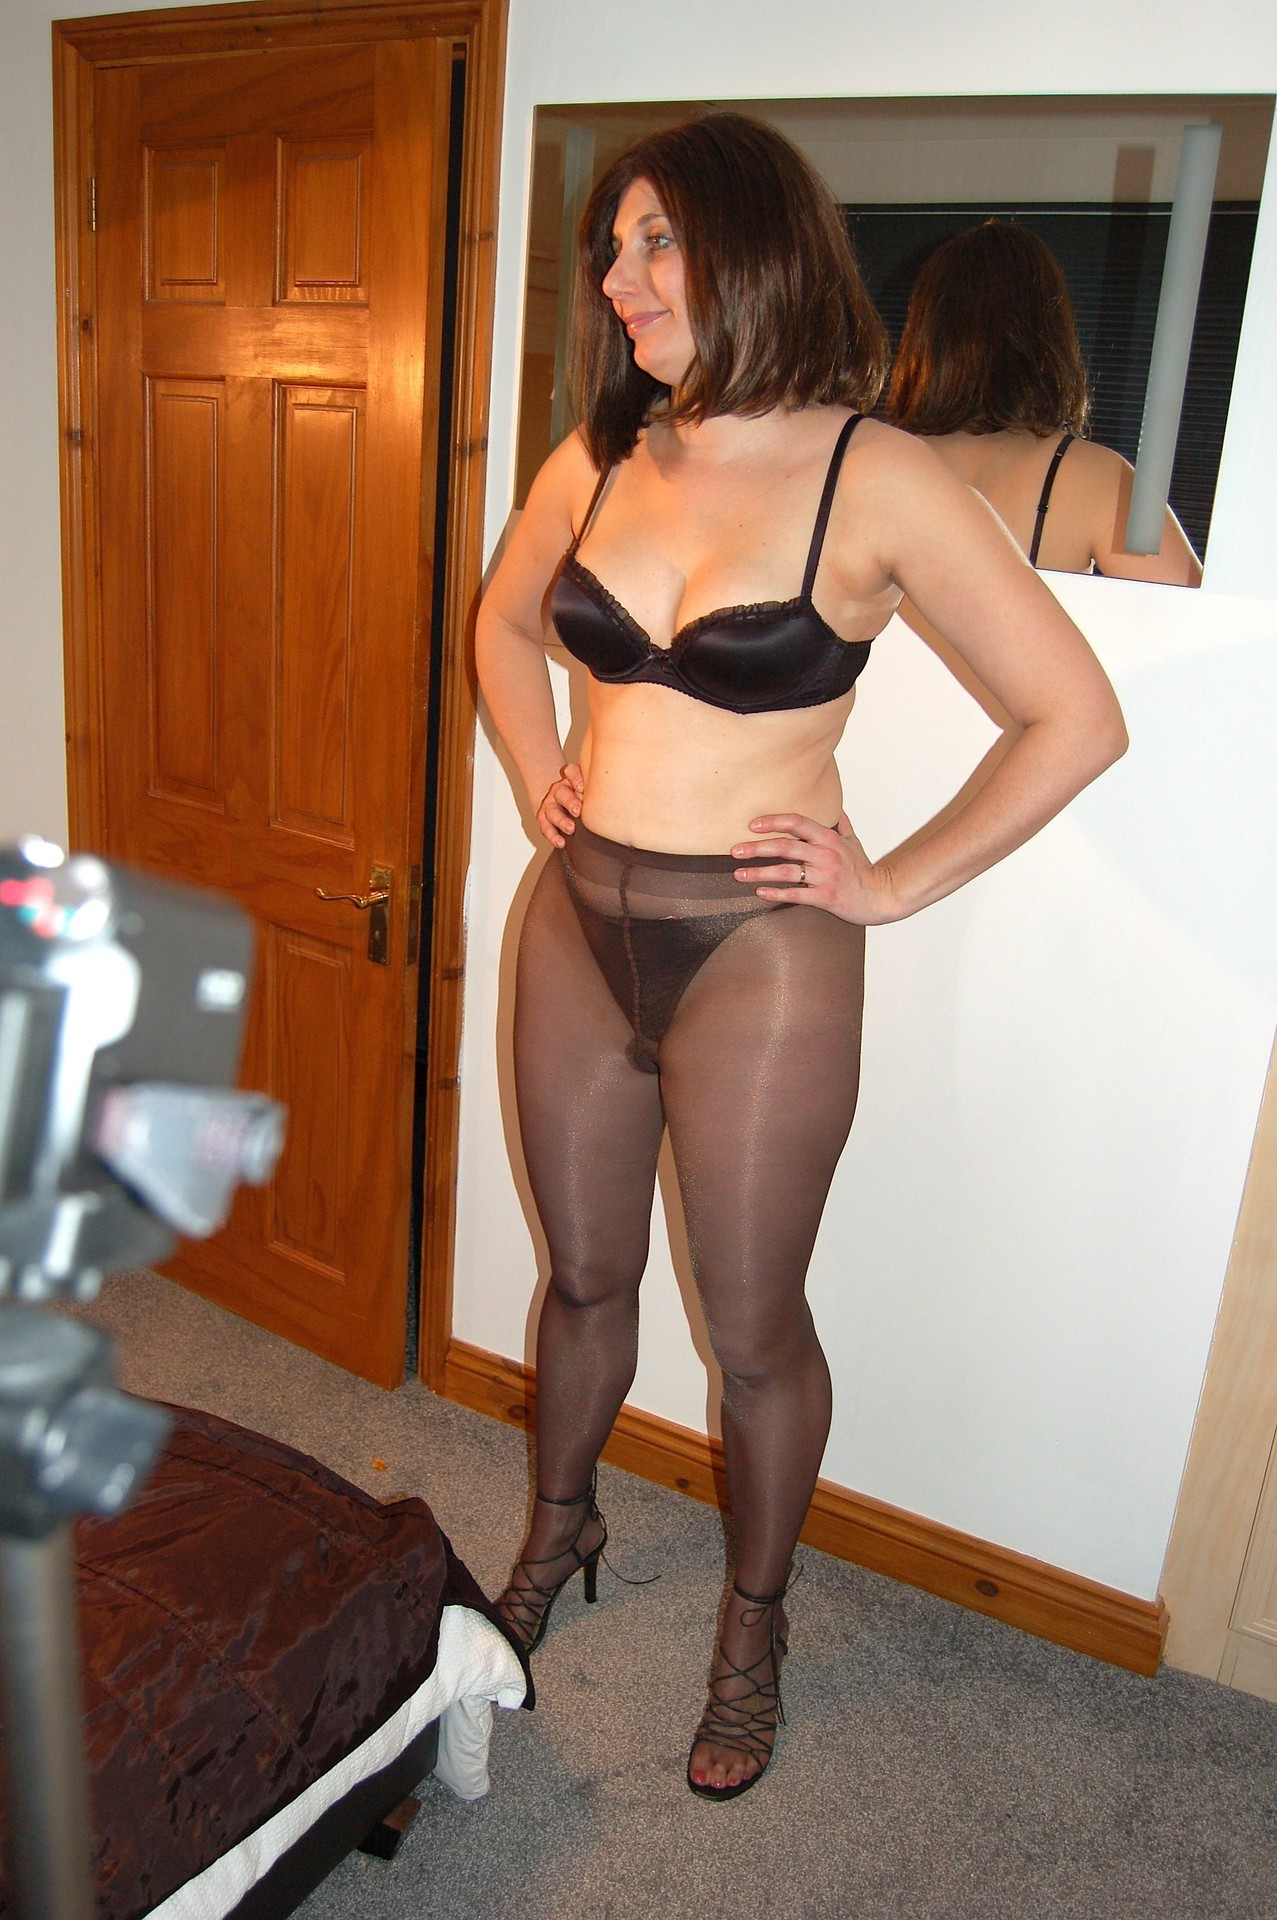 pantyhose mature sex galleries videos naked pictures